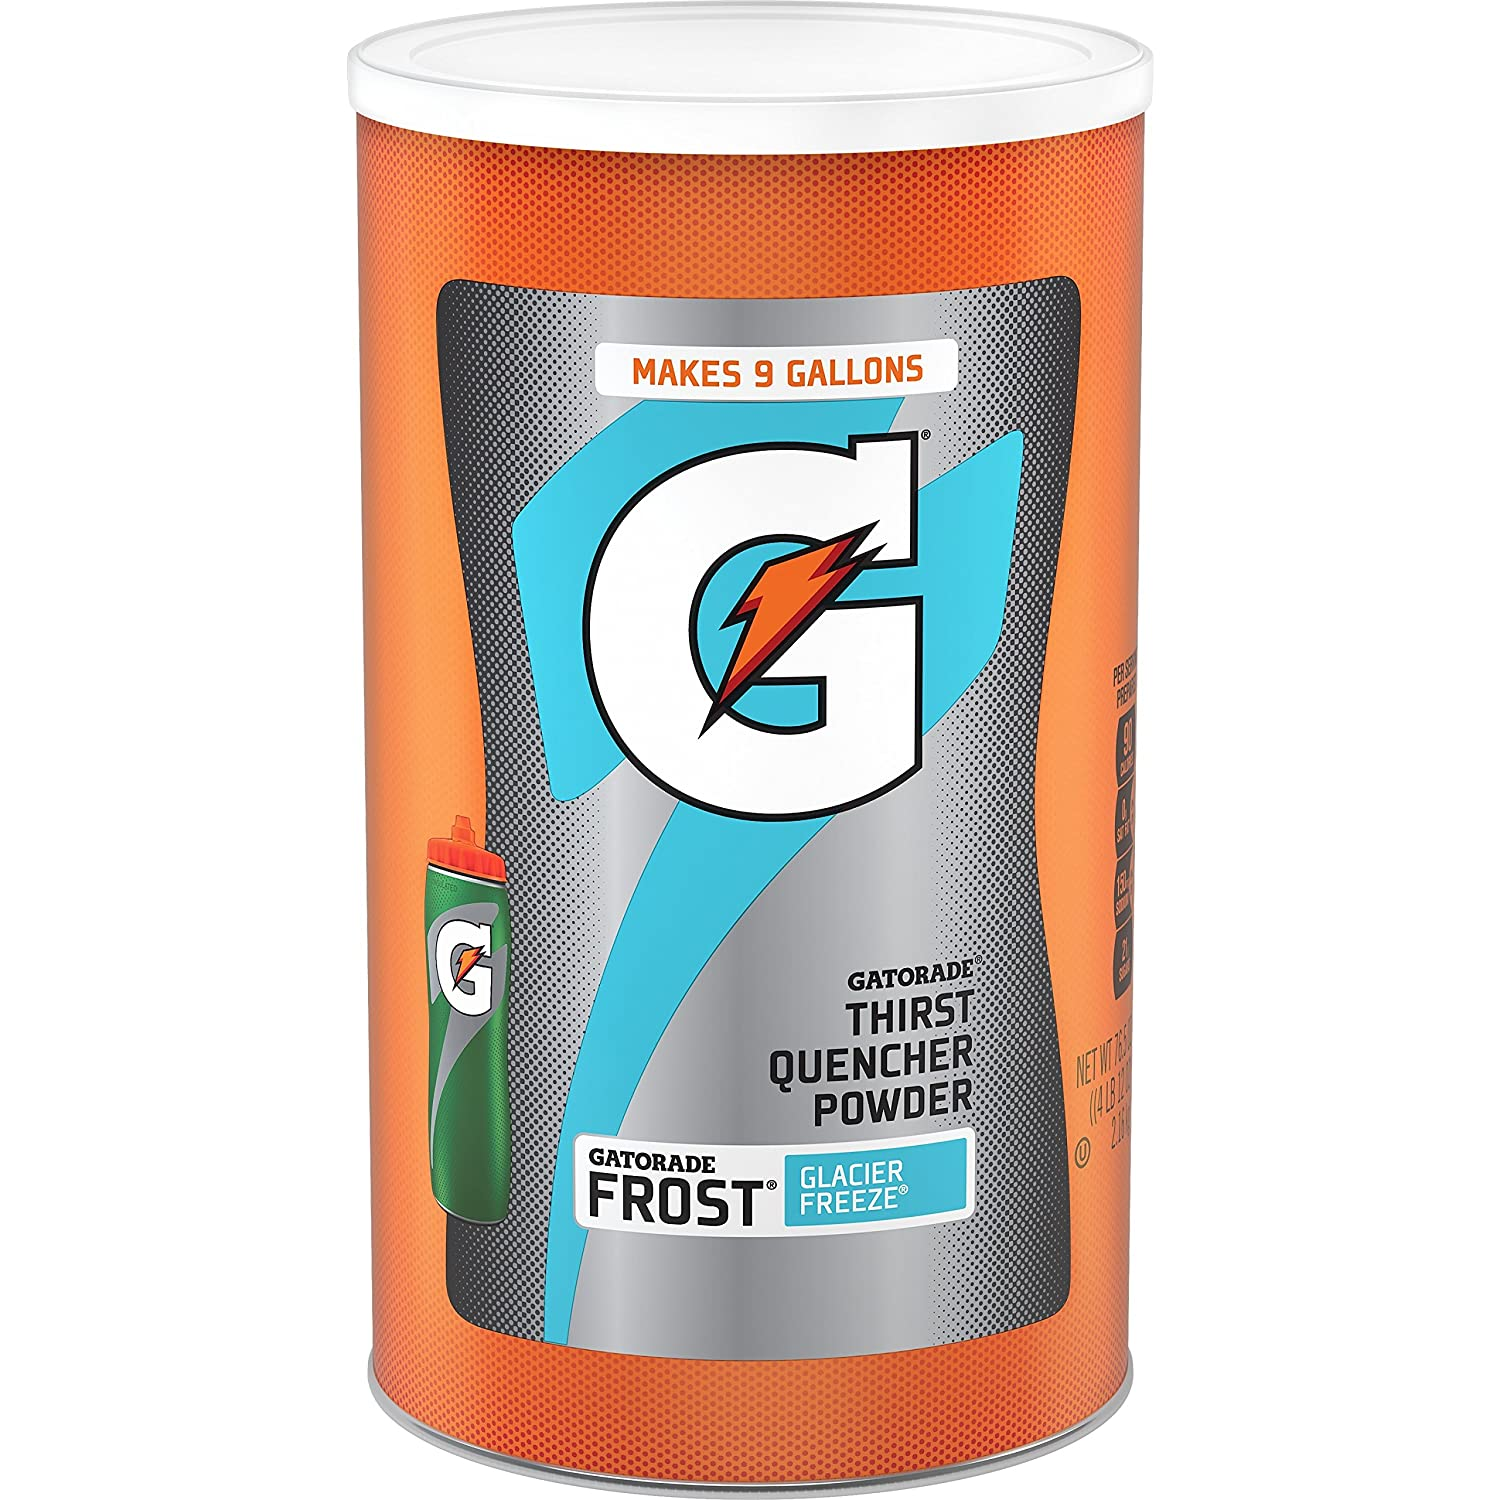 Gatorade Thirst Quencher Powder, Frost Glacier Freeze, 76.5 Ounce, Pack of 1